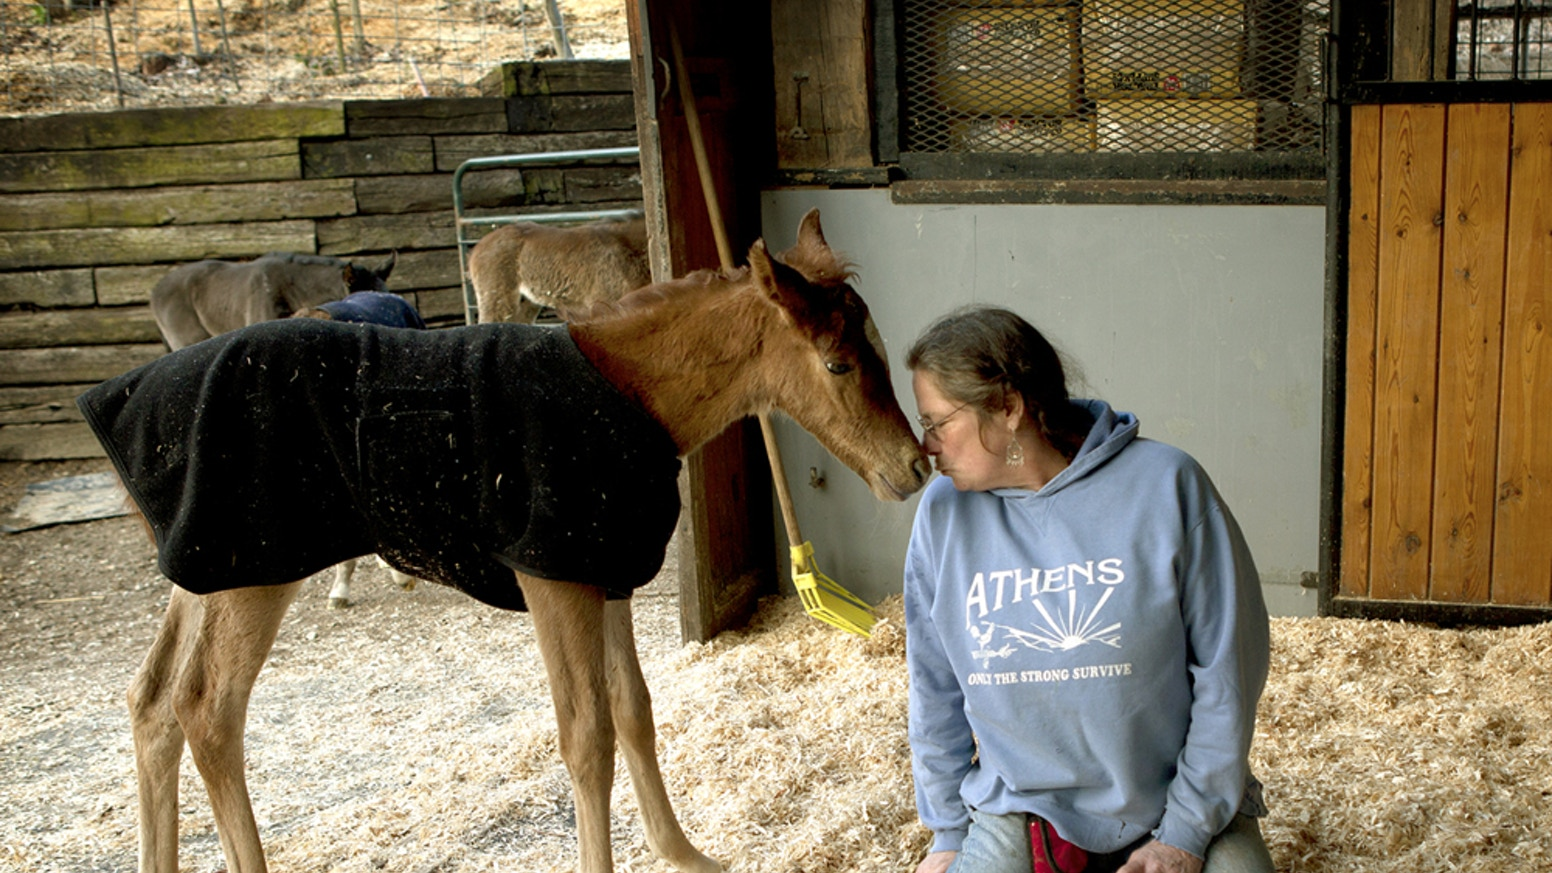 This documentary is about Last Chance Corral in Athens, Ohio and their heroic work saving nurse mare foals from imminent death.